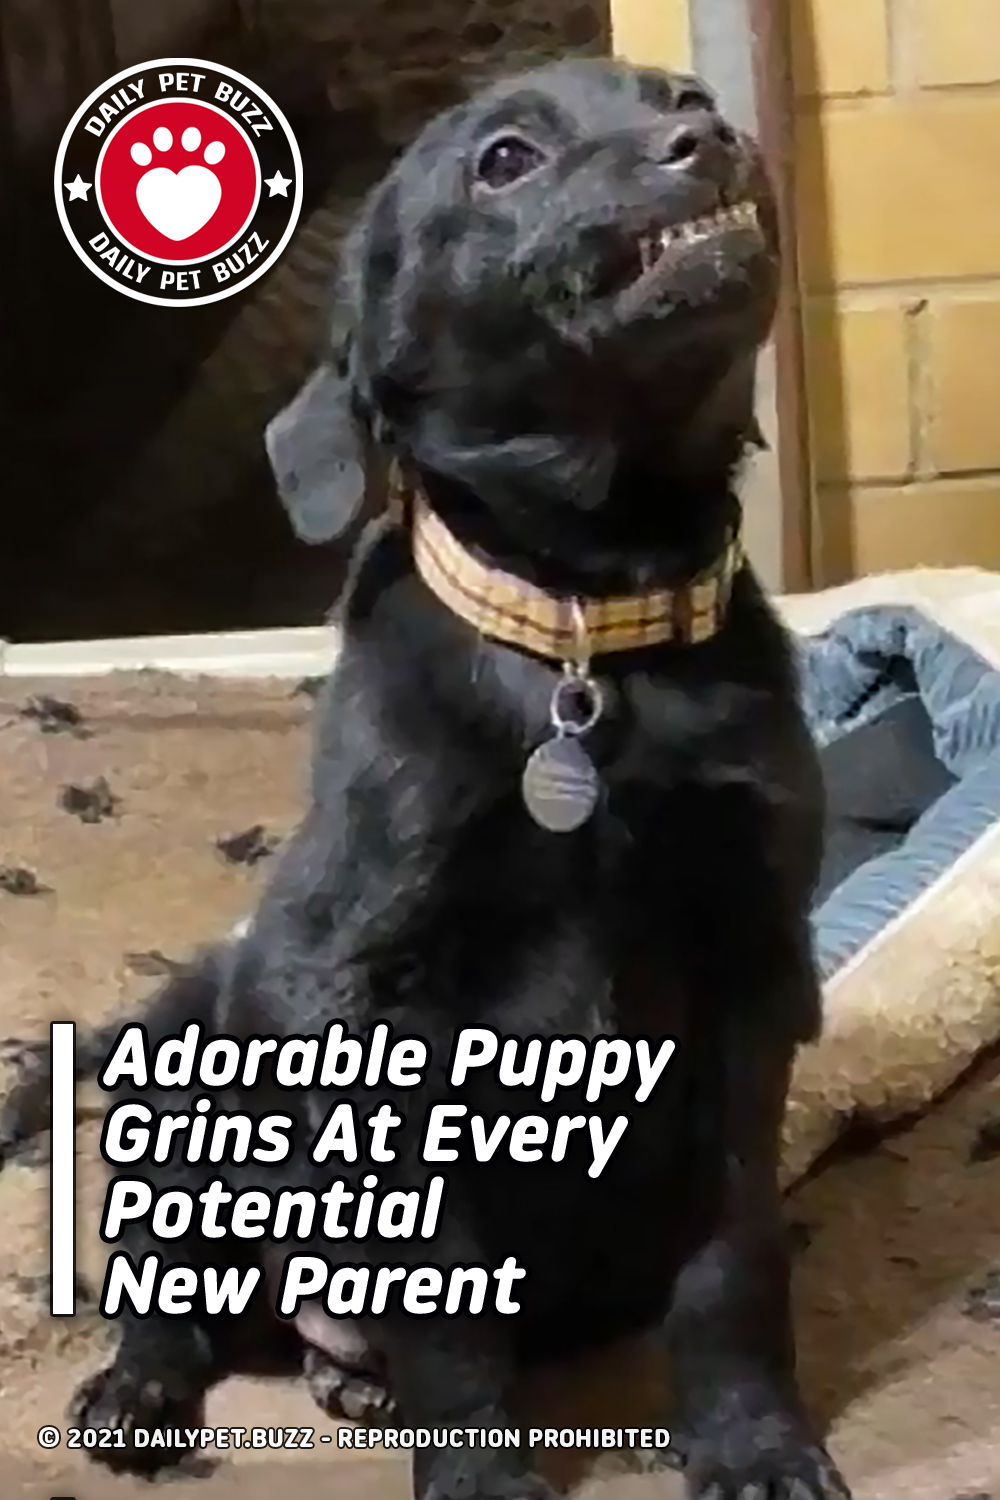 Adorable Puppy Grins At Every Potential New Parent